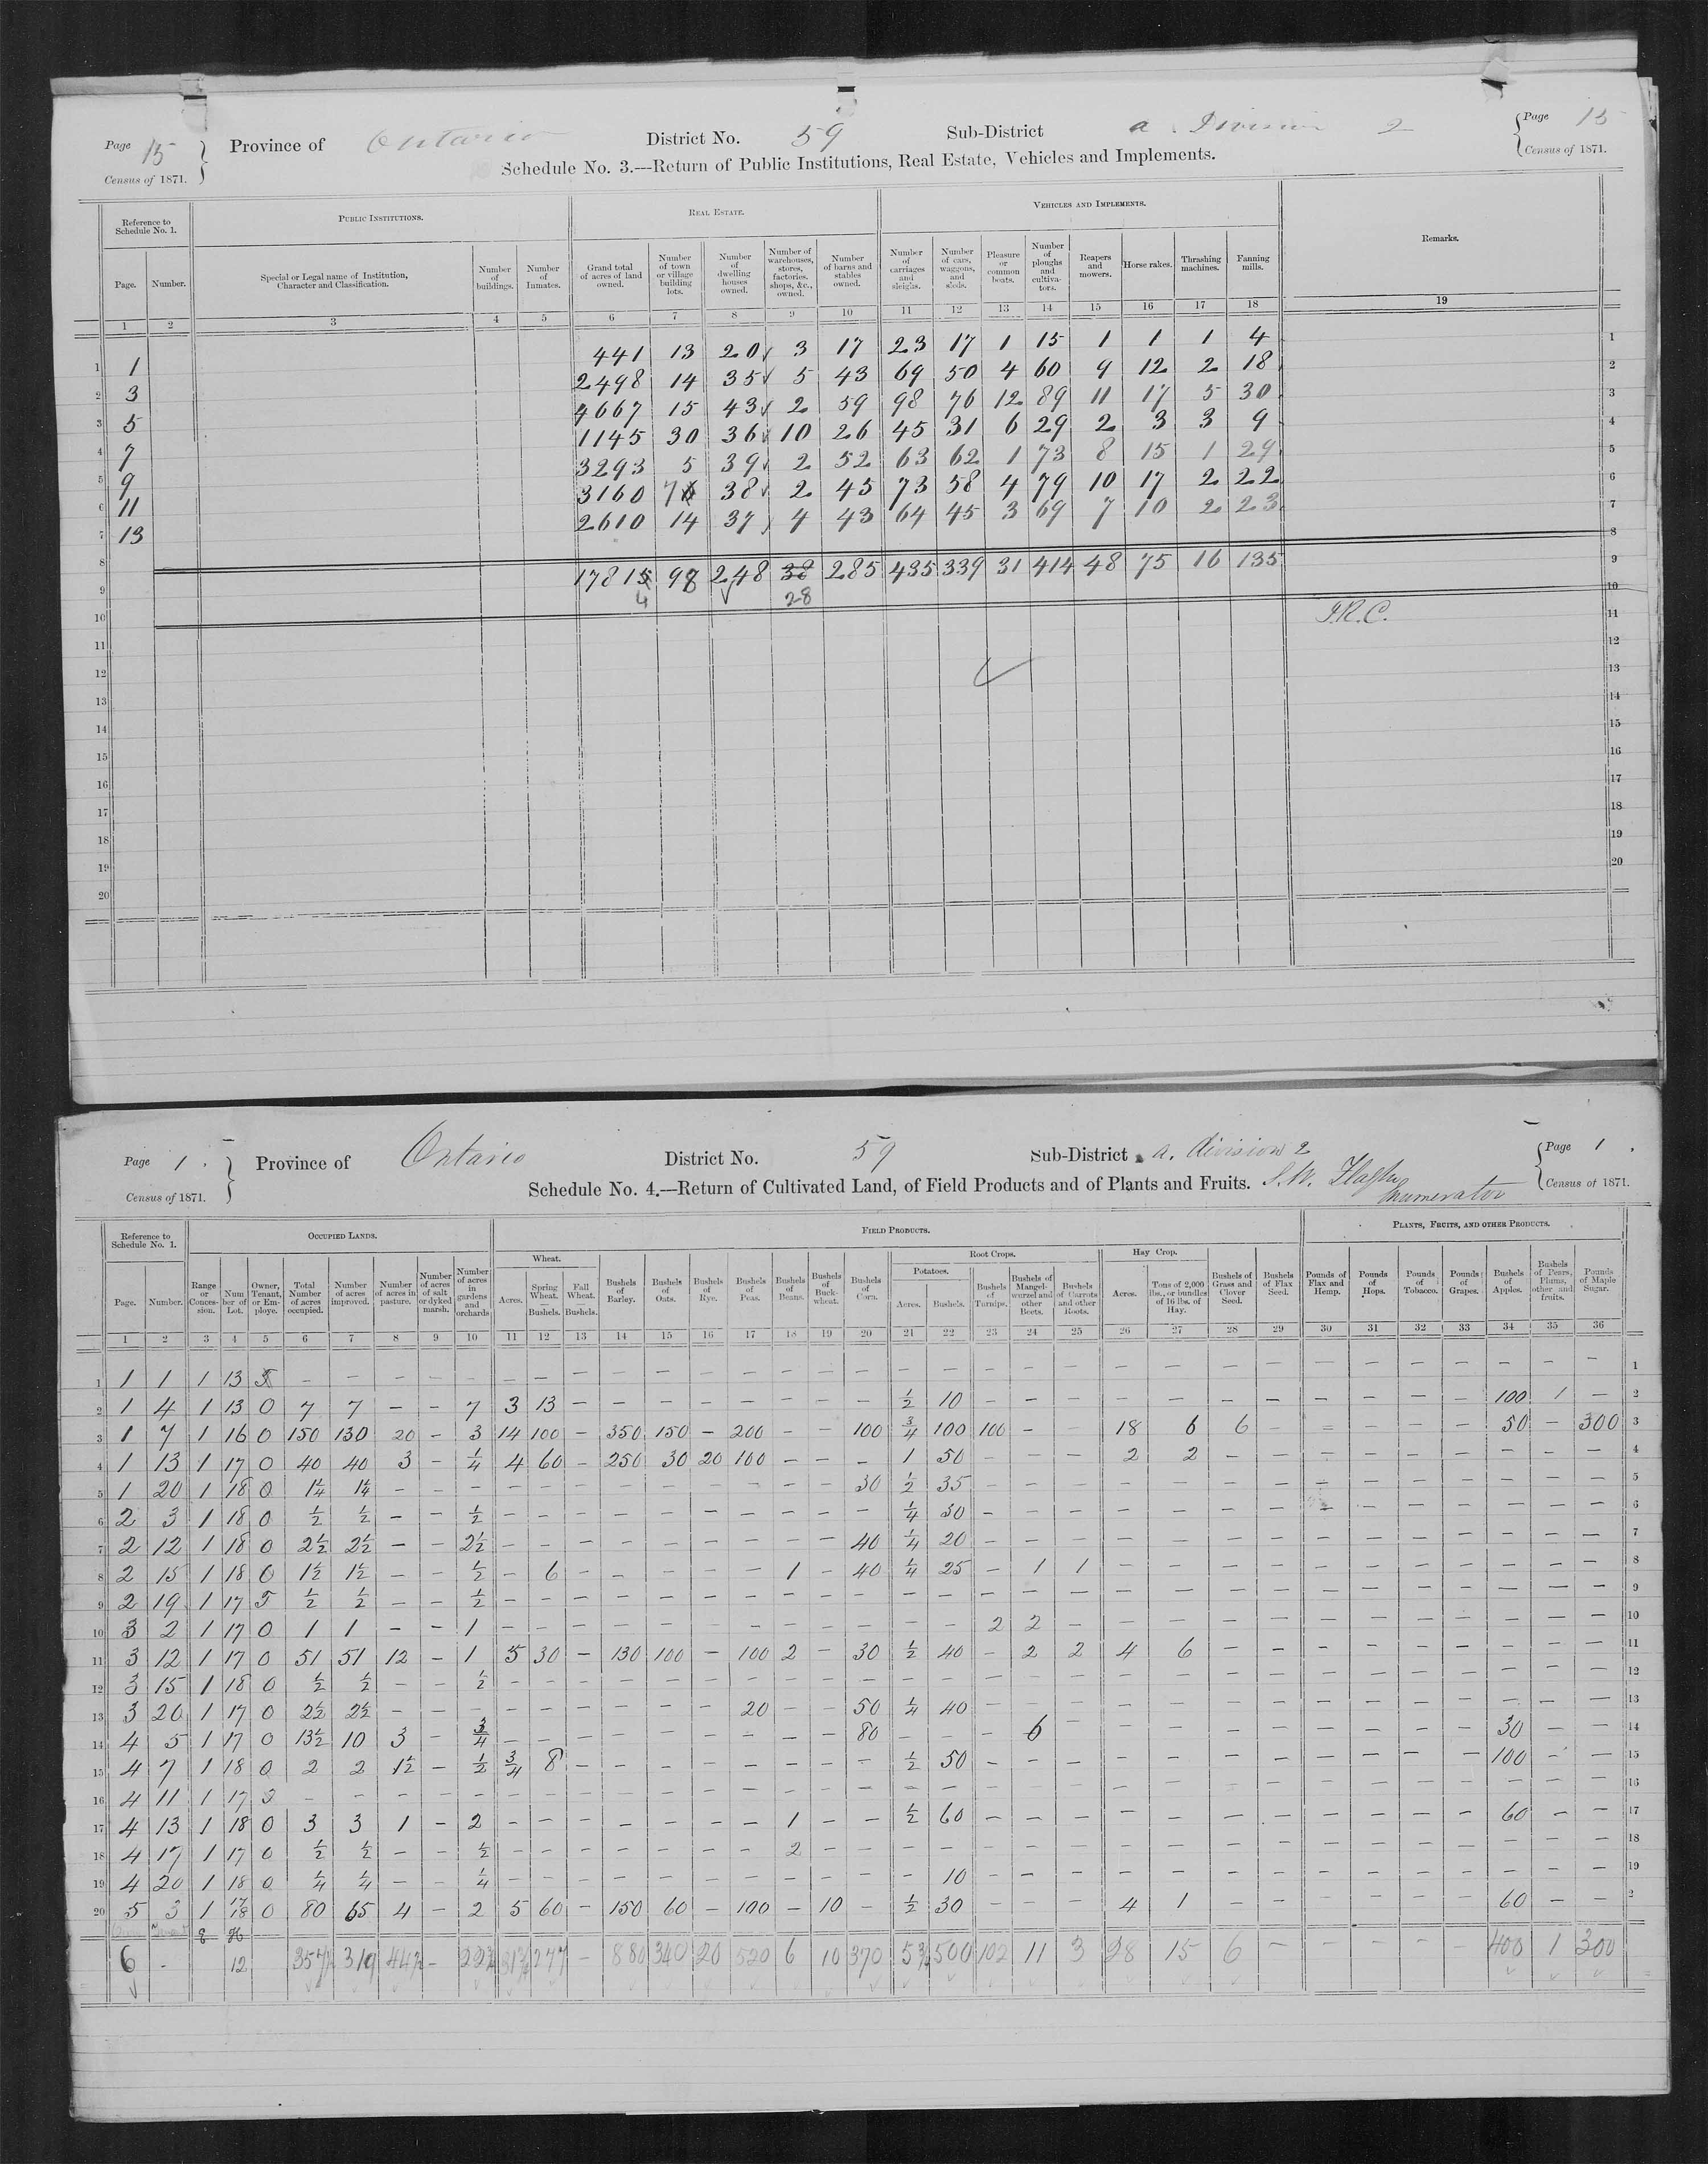 Title: Census of Canada, 1871 - Mikan Number: 142105 - Microform: c-9989